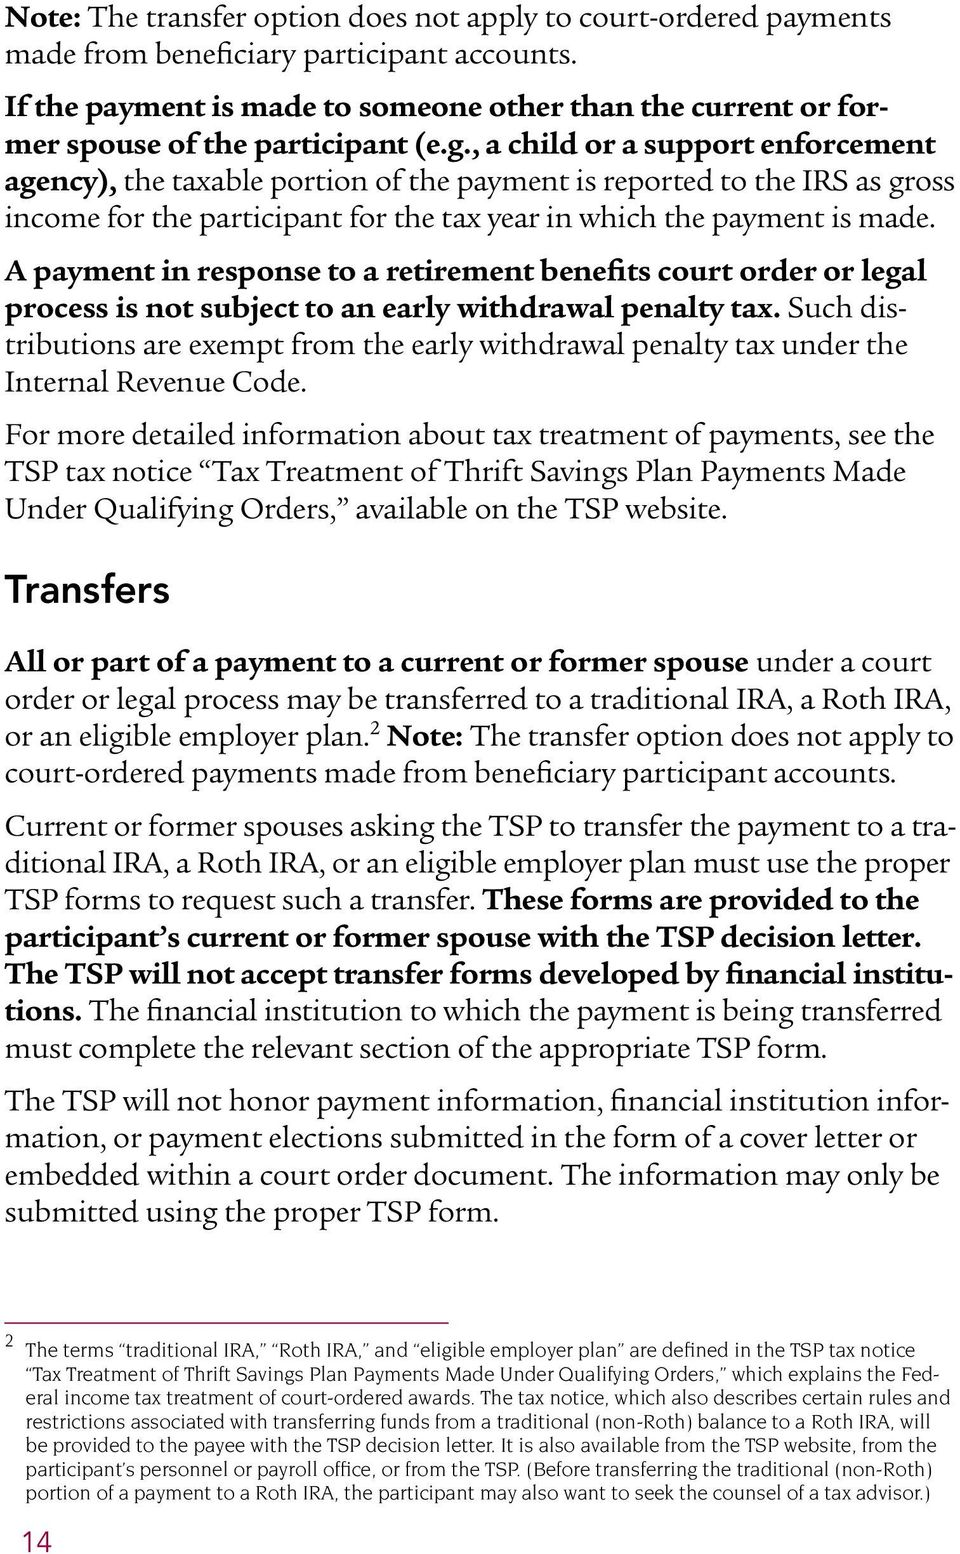 , a child or a support enforcement agency), the taxable portion of the payment is reported to the IRS as gross income for the participant for the tax year in which the payment is made.